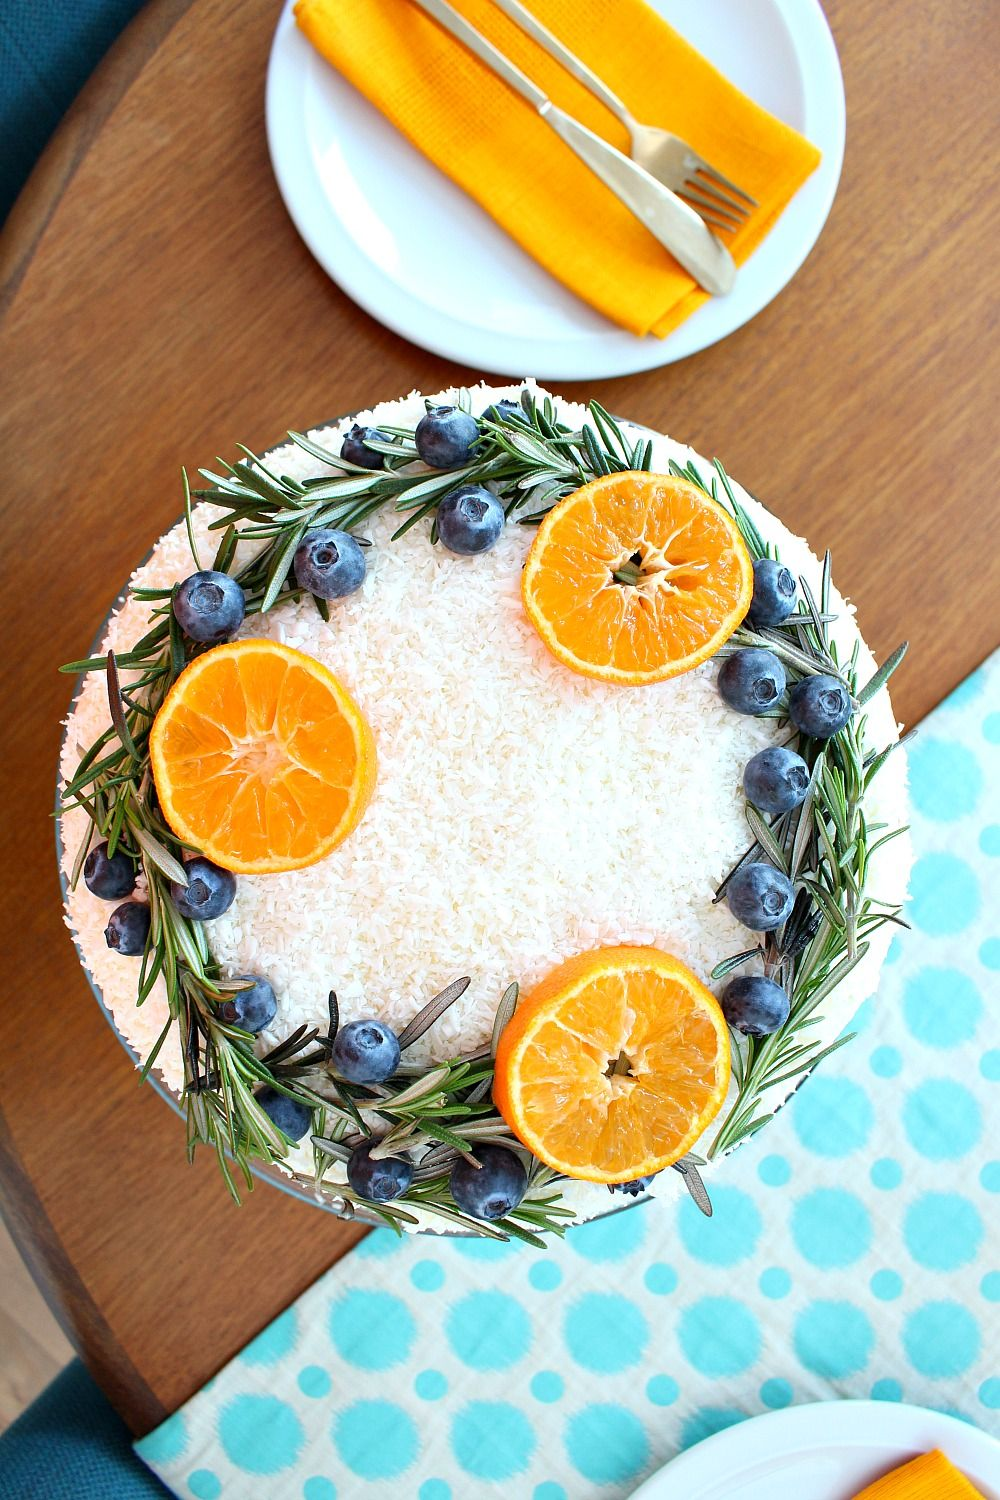 Photo of Carrot Cake with Natural Wreath Cake Decoration | Festive Holiday Baking | Dans le Lakehouse